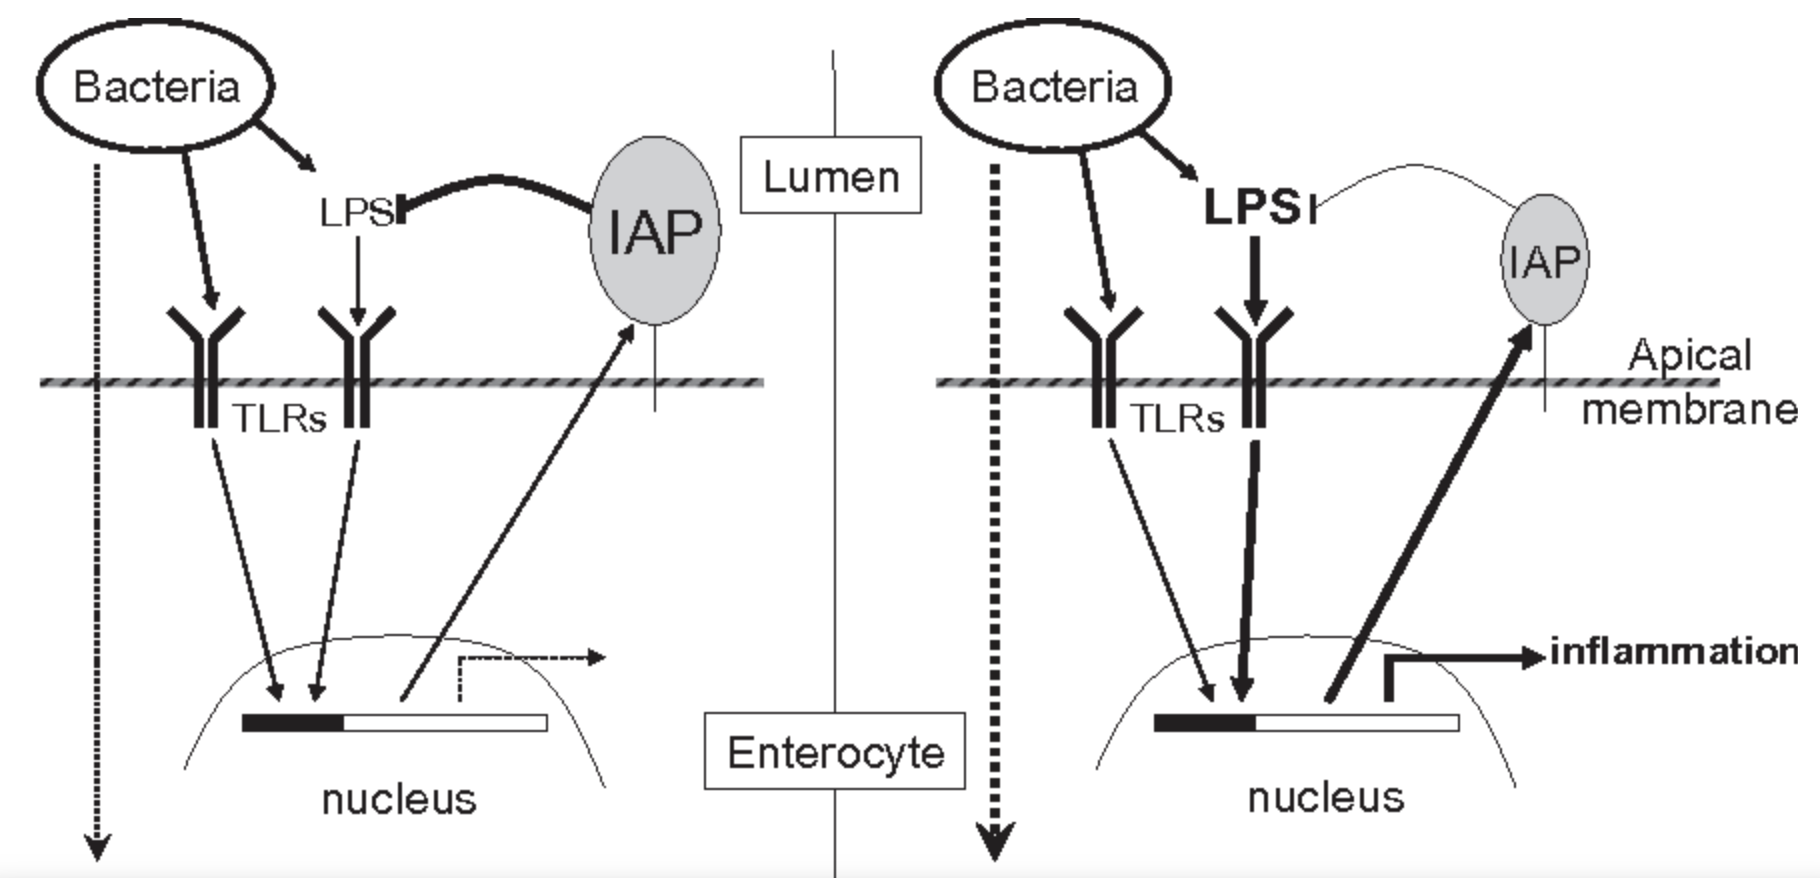 Feedback regulation between IAP activity and bacterial LPS